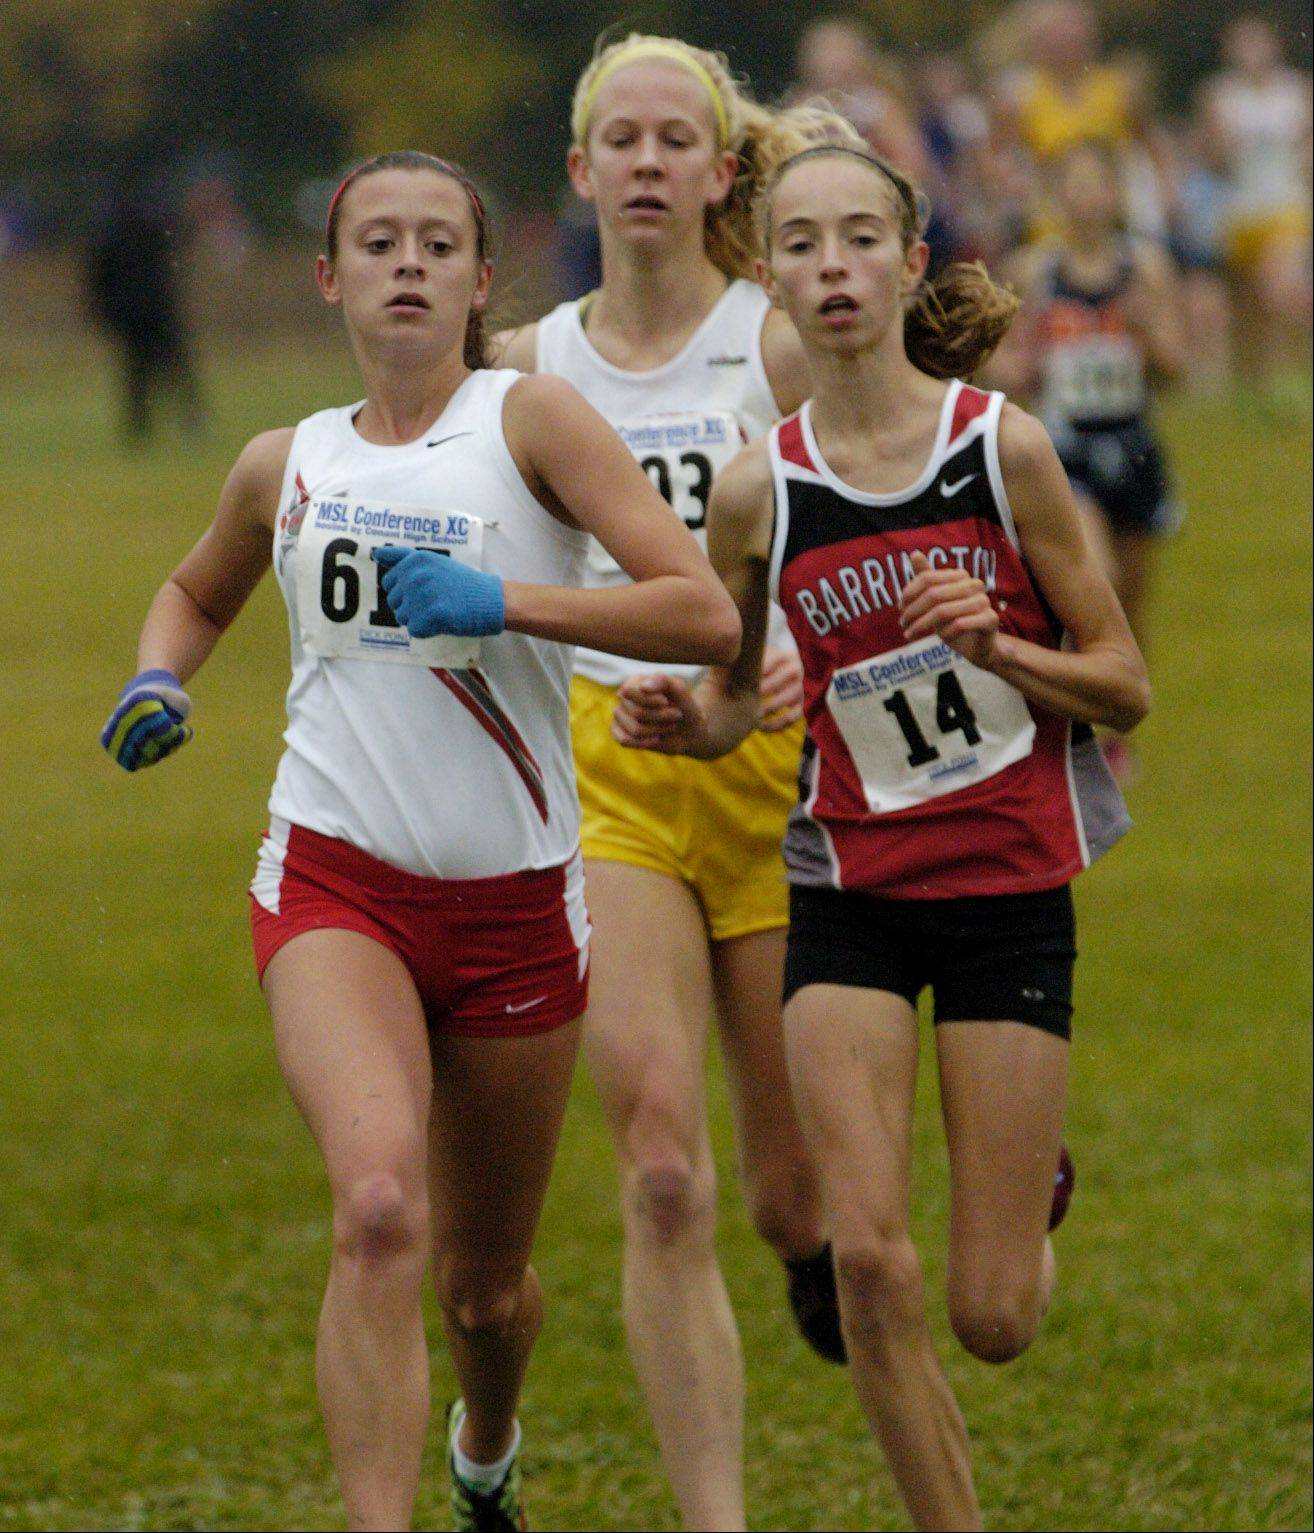 Palatine's Tess Wasowicz leads Lauren Conroy of Barrington, right, and Caroline Kurdej of Schaumburg after first lap of girls varsity Mid-Suburban League cross country championship at Busse Woods.